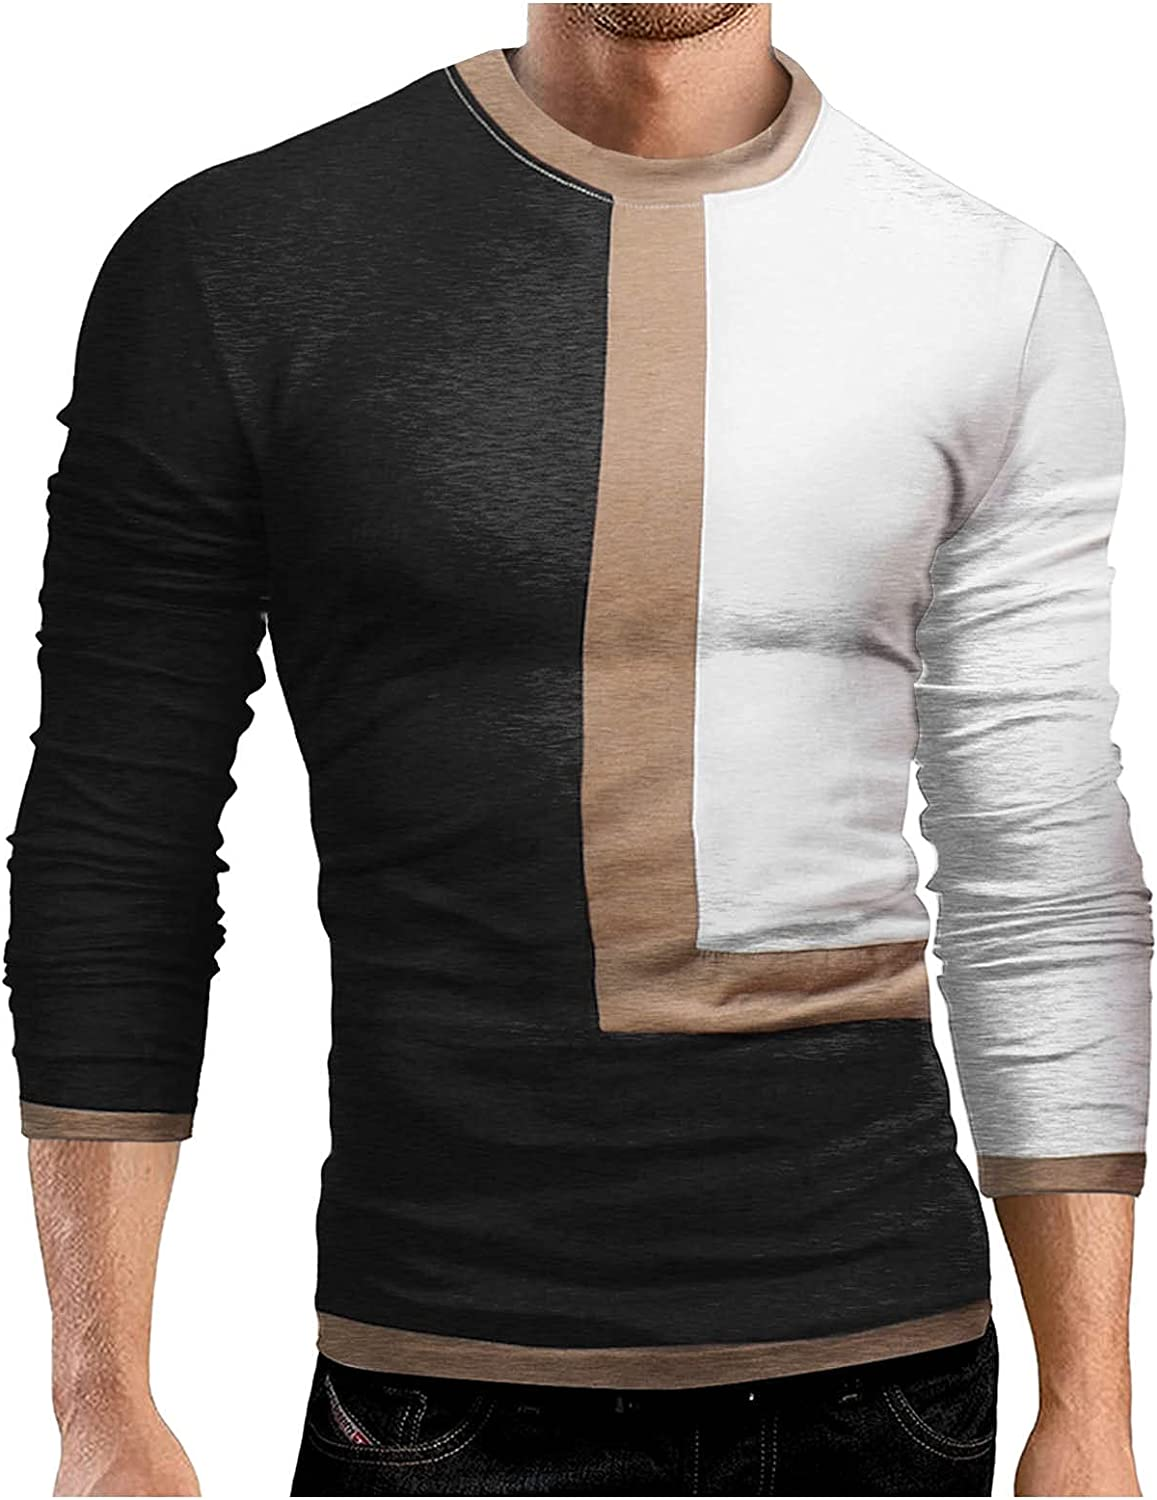 Men's Breathable Sports Shirts Camouflage Tight-fitting Long-sleeved Quick-drying Fitness Tops Casual Slim Fit T-Shirt